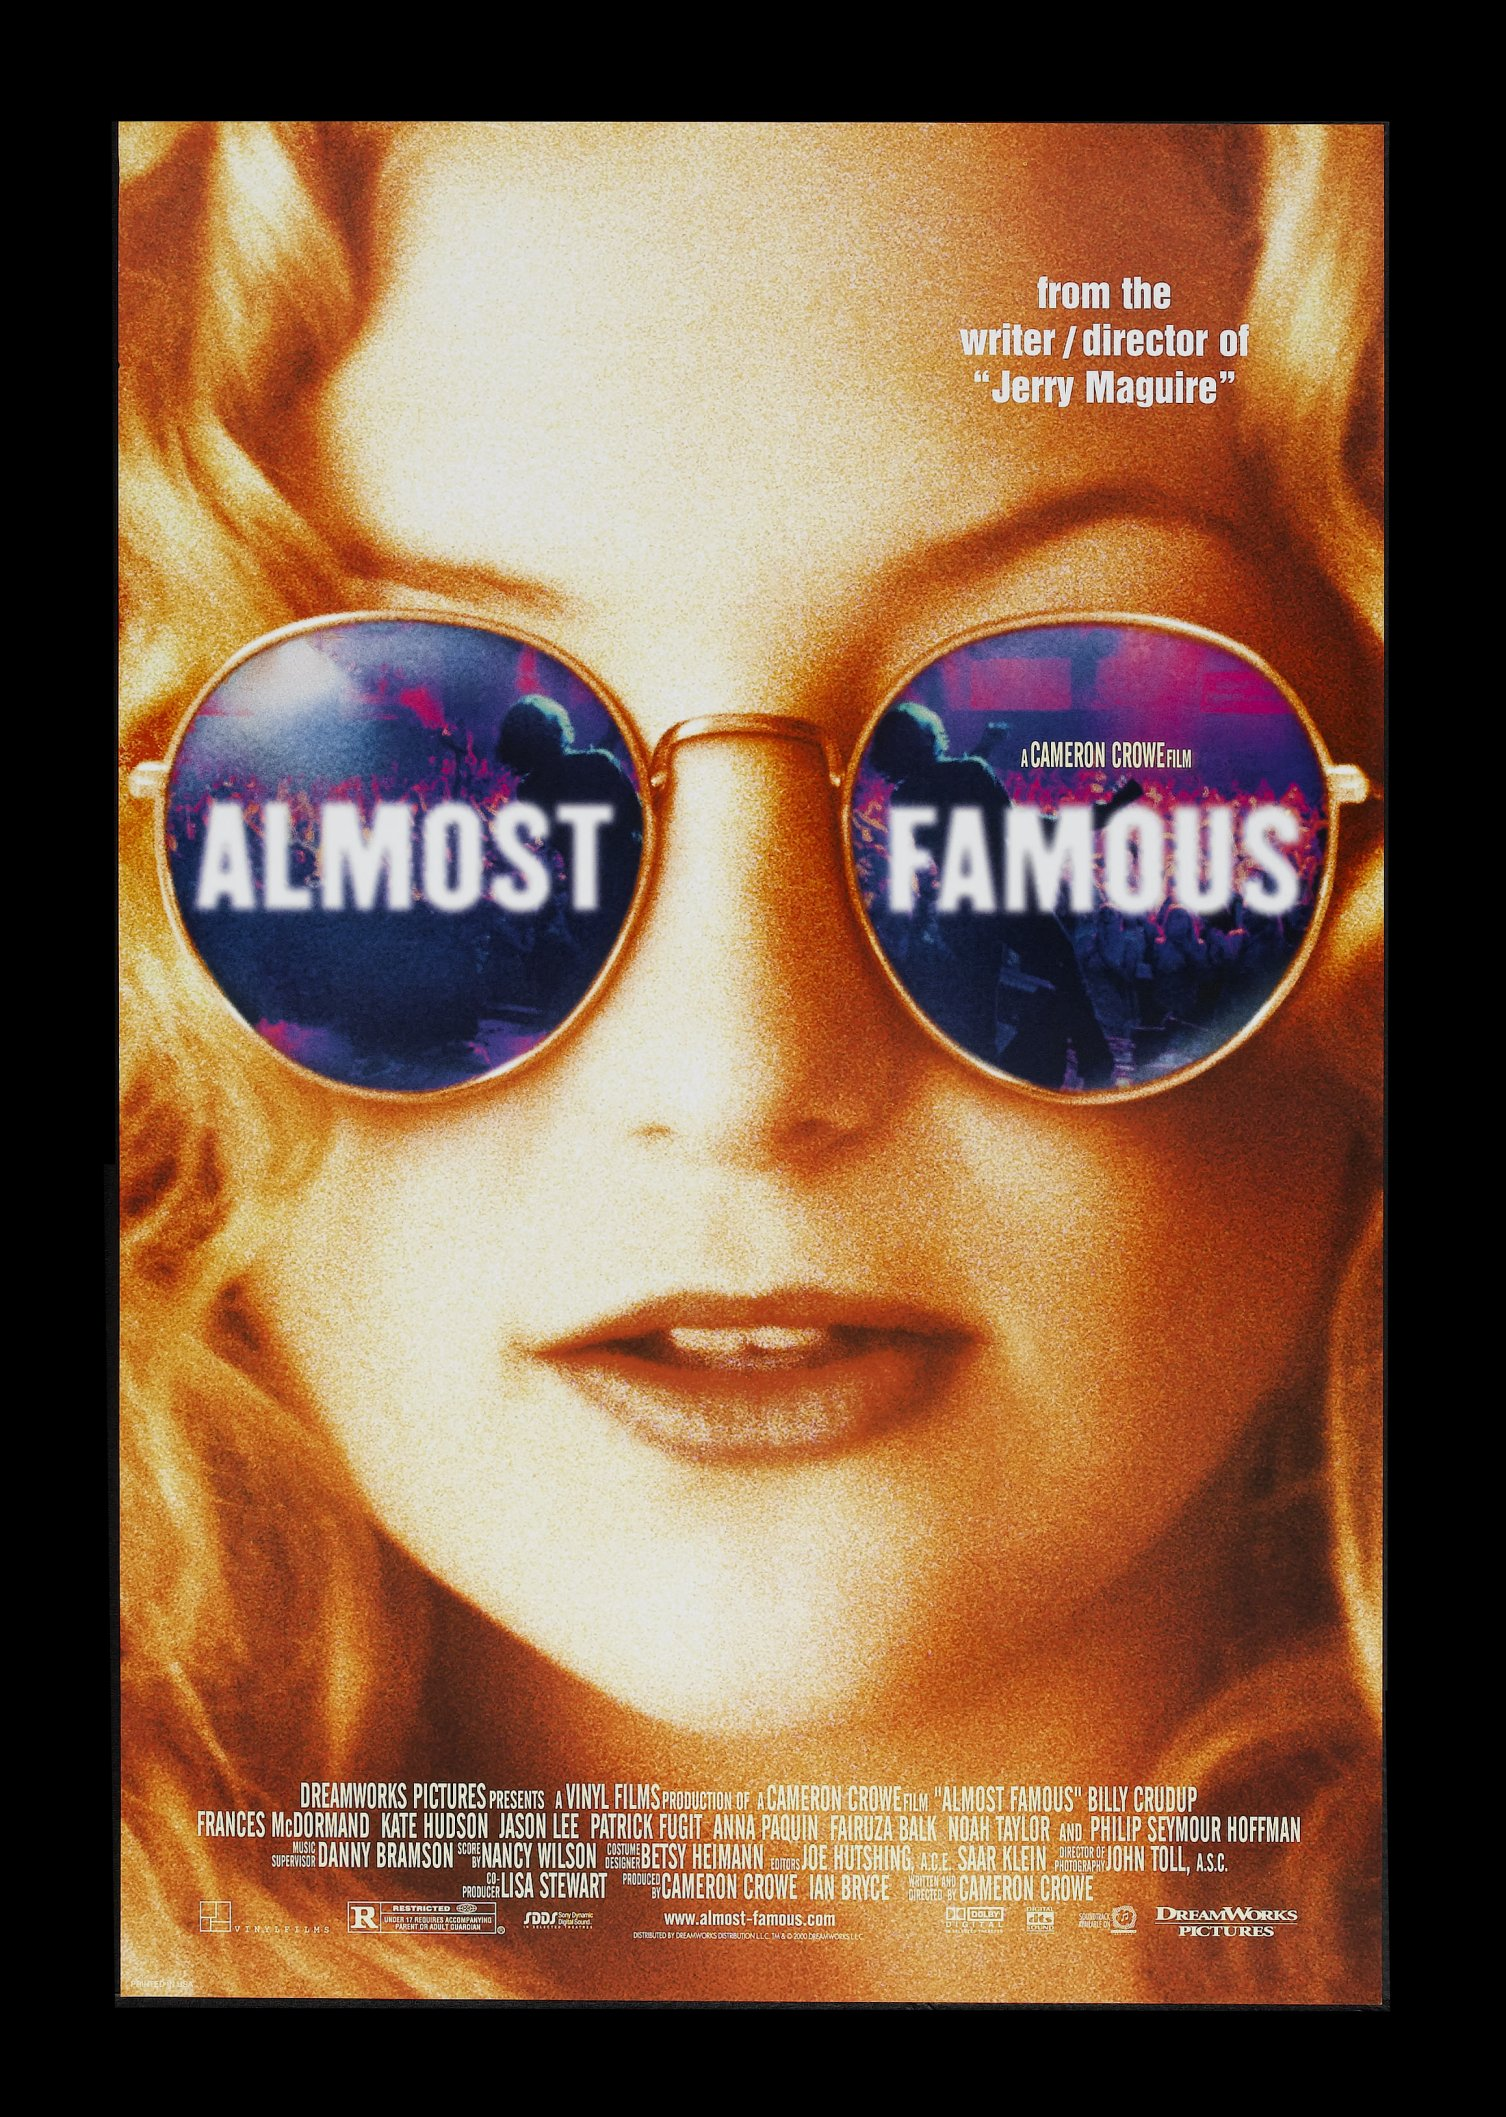 ALMOST FAMOUS * 1SH ORIG MOVIE POSTER DS NM C9 2000 | eBay